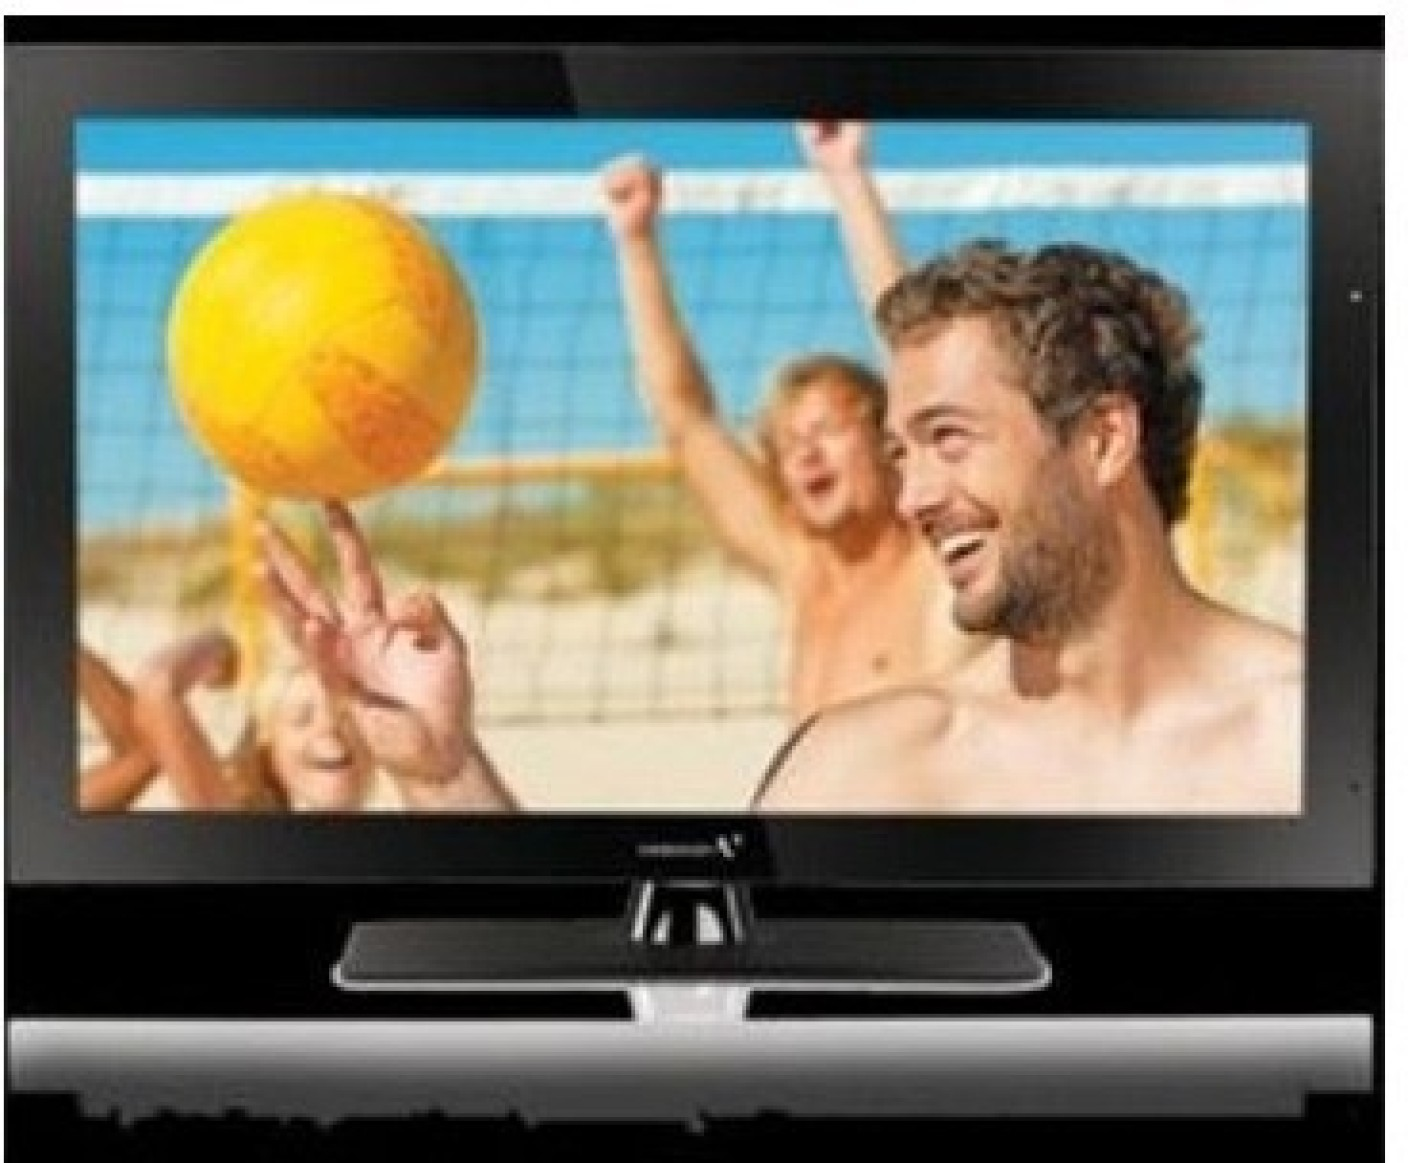 videocon cm 32 inch full hd led tv online at best. Black Bedroom Furniture Sets. Home Design Ideas